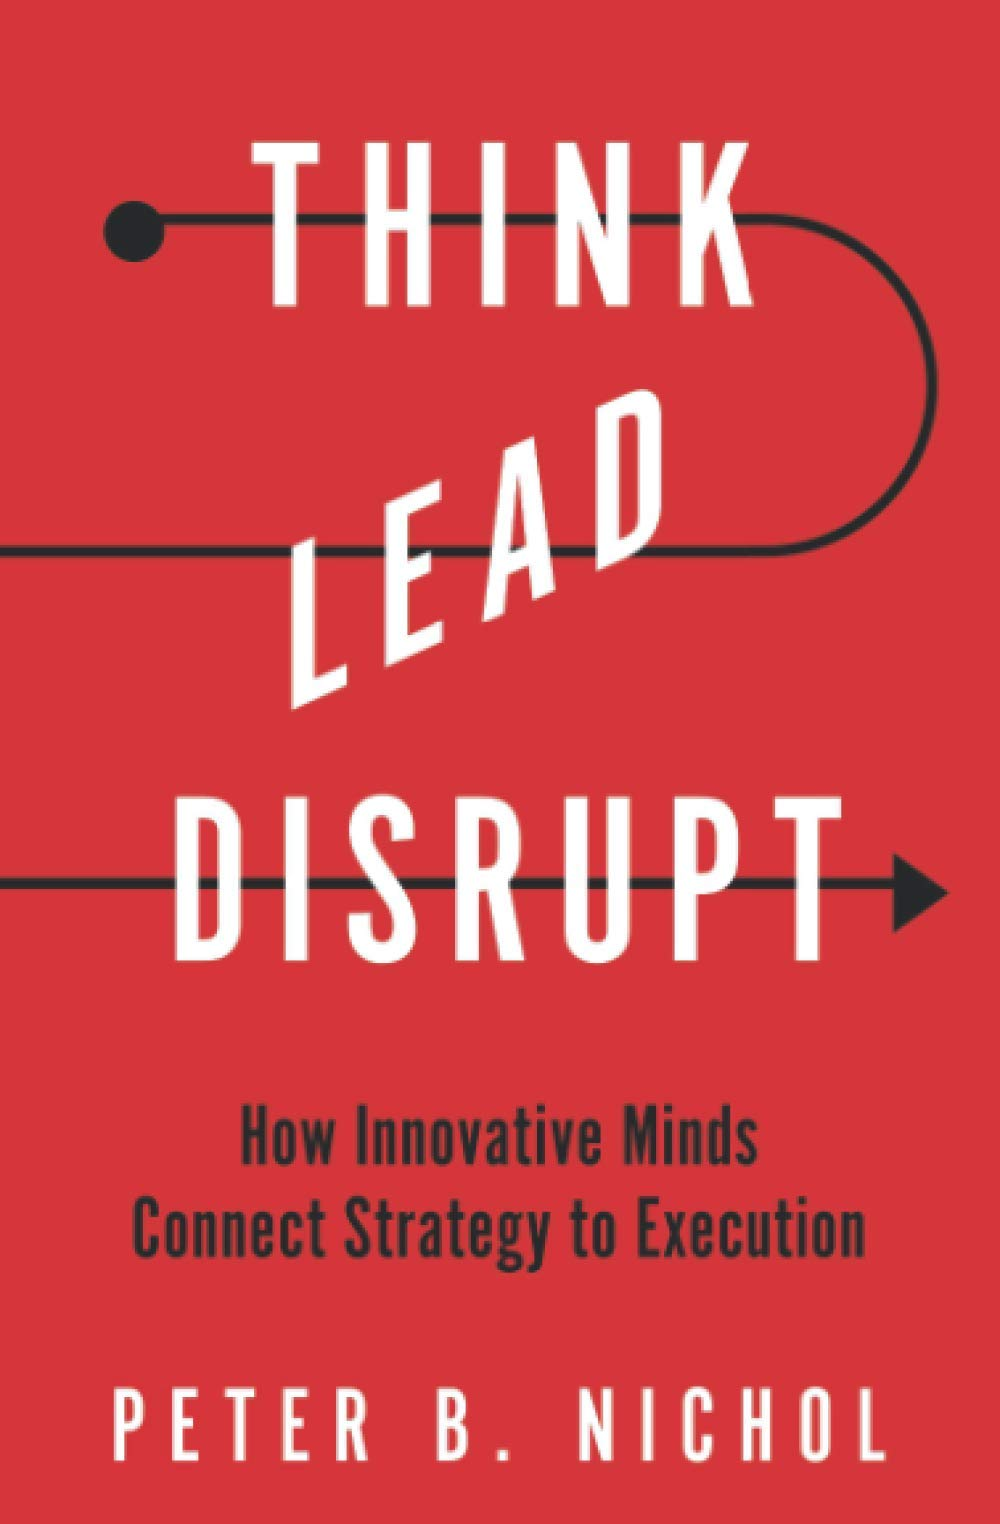 Think Lead Disrupt: How Innovative Minds Connect Strategy to Execution:  Nichol, Peter B., Nichol, Peter B.: 9780578787381: Amazon.com: Books